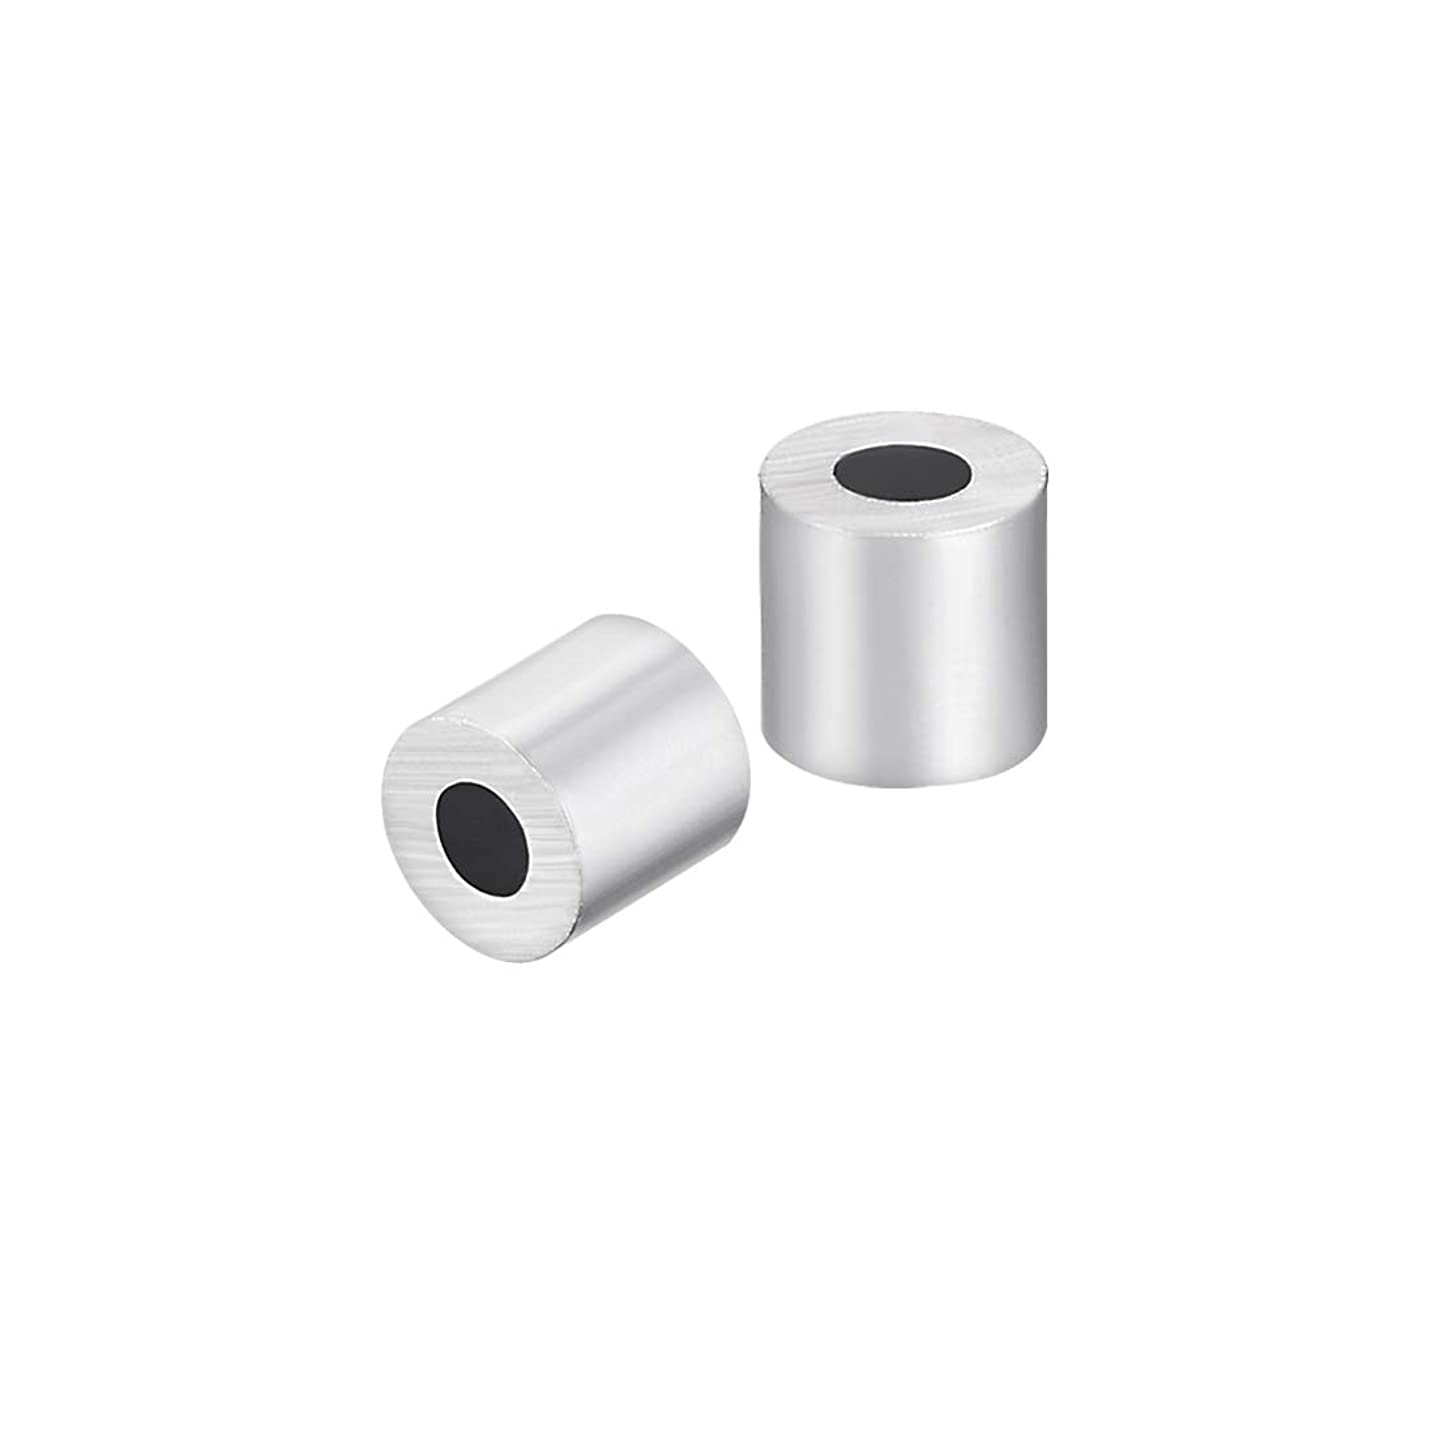 uxcell M2.5 Aluminum Sleeve Single Tube Crimp 2.5mm 3/32 in Steel Wire Rope Button Stop Clips Cable Ferrules 30 Pcs